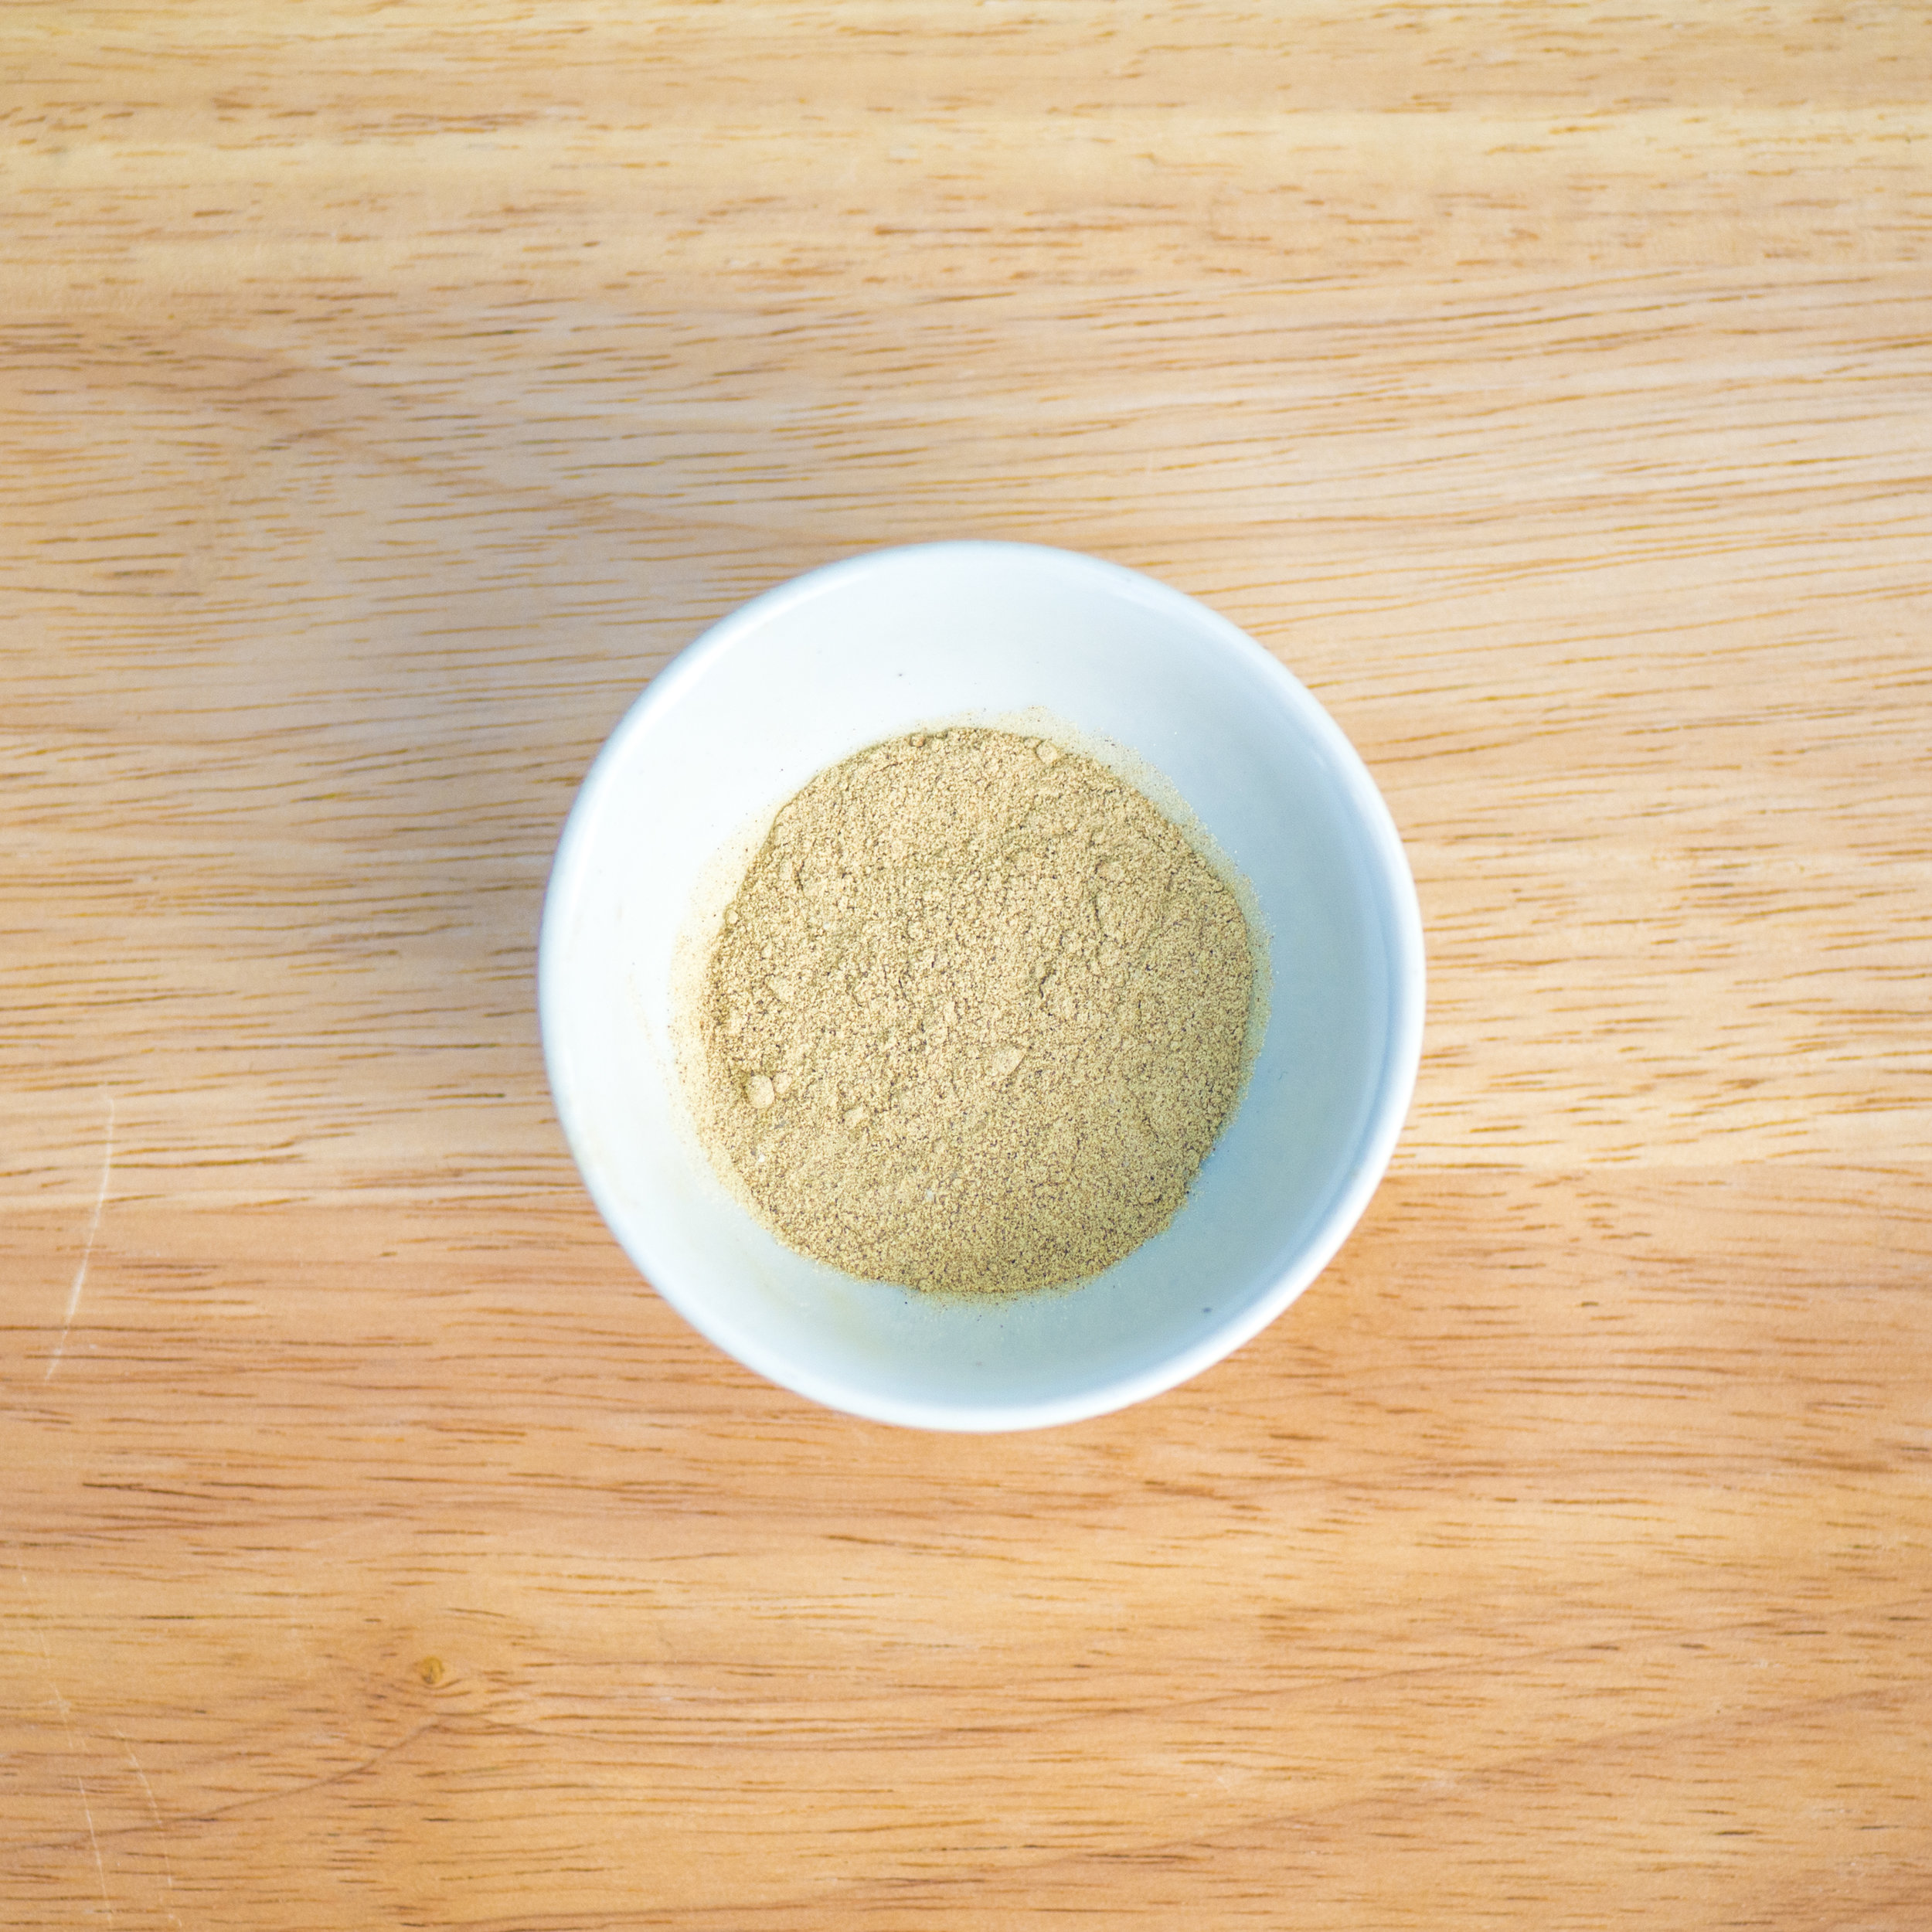 shrimp salt   To give our bings and noodles the northern Chinese signature seafood flavor, we toast and grind up dehydrated shrimp shells to make shrimp salt. The natural salinity of the ocean gives the shrimps a salty quality, hence shrimp salt.